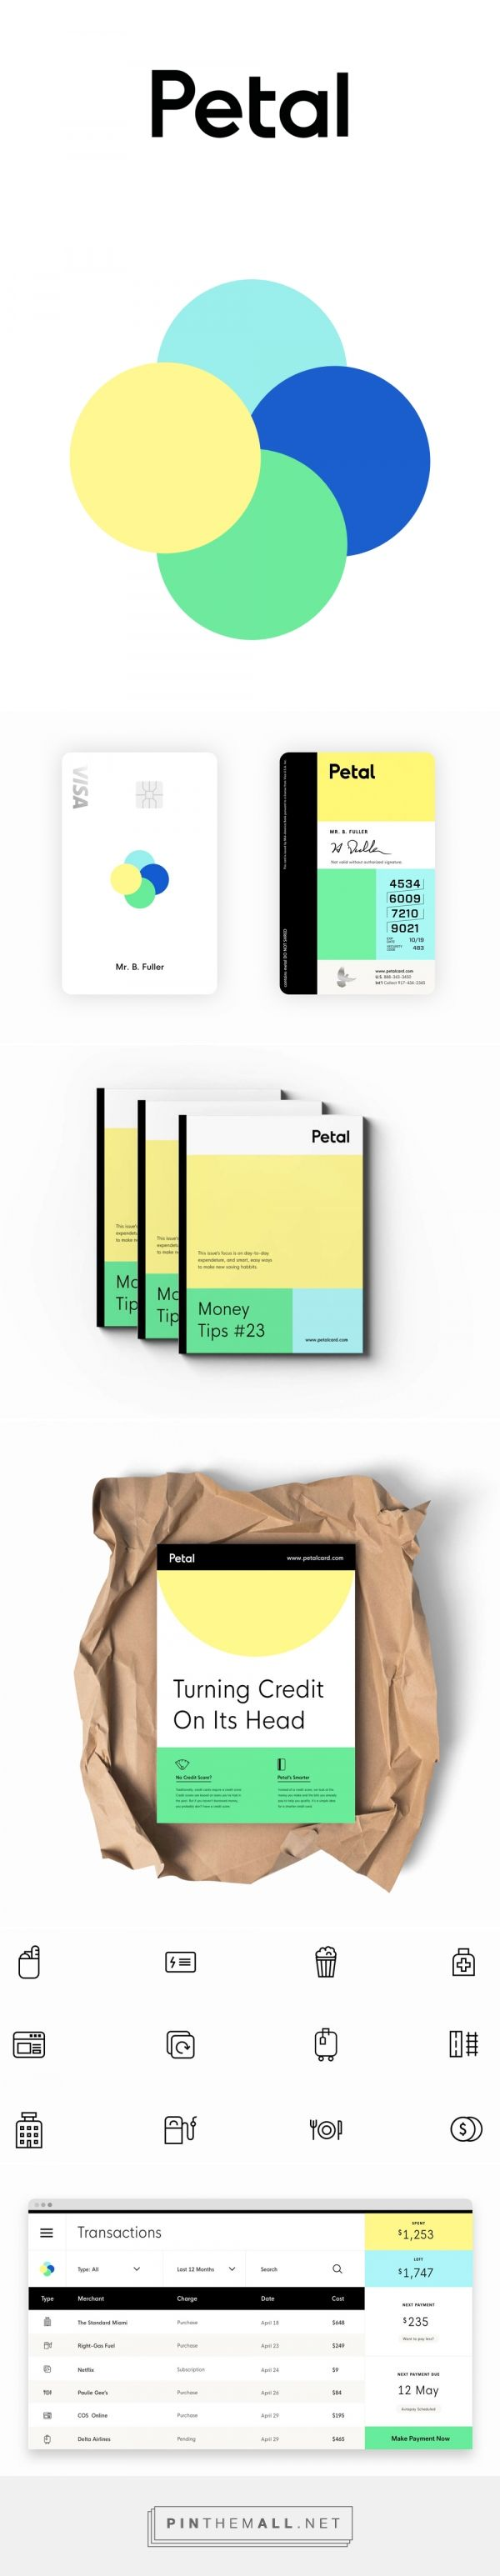 Brand New: New Logo and Identity for Petal by David McGillivray... - a grouped images picture - Pin Them All